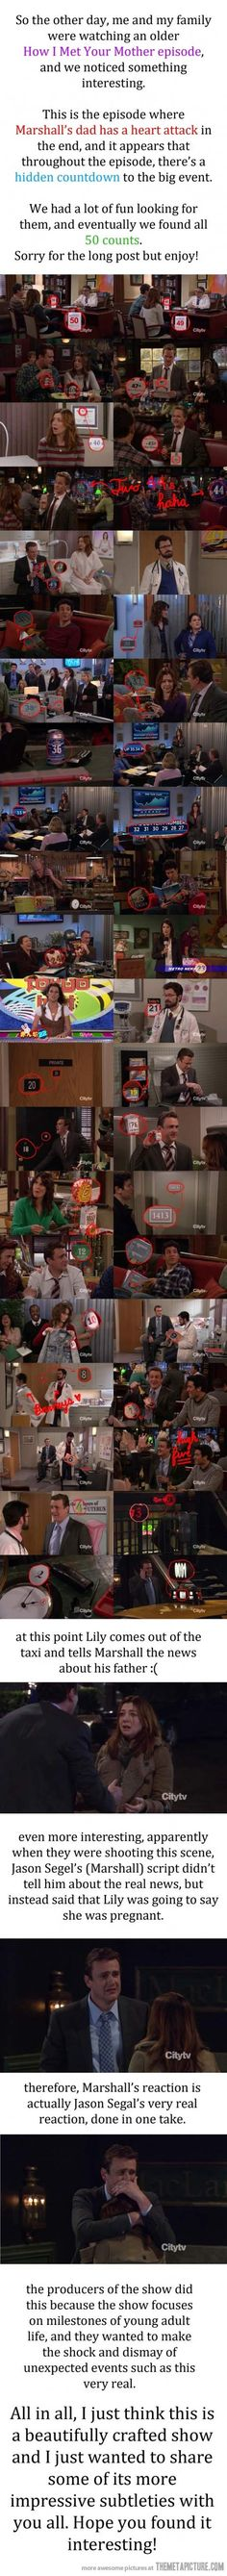 Wow this is very cool. #HIMYM